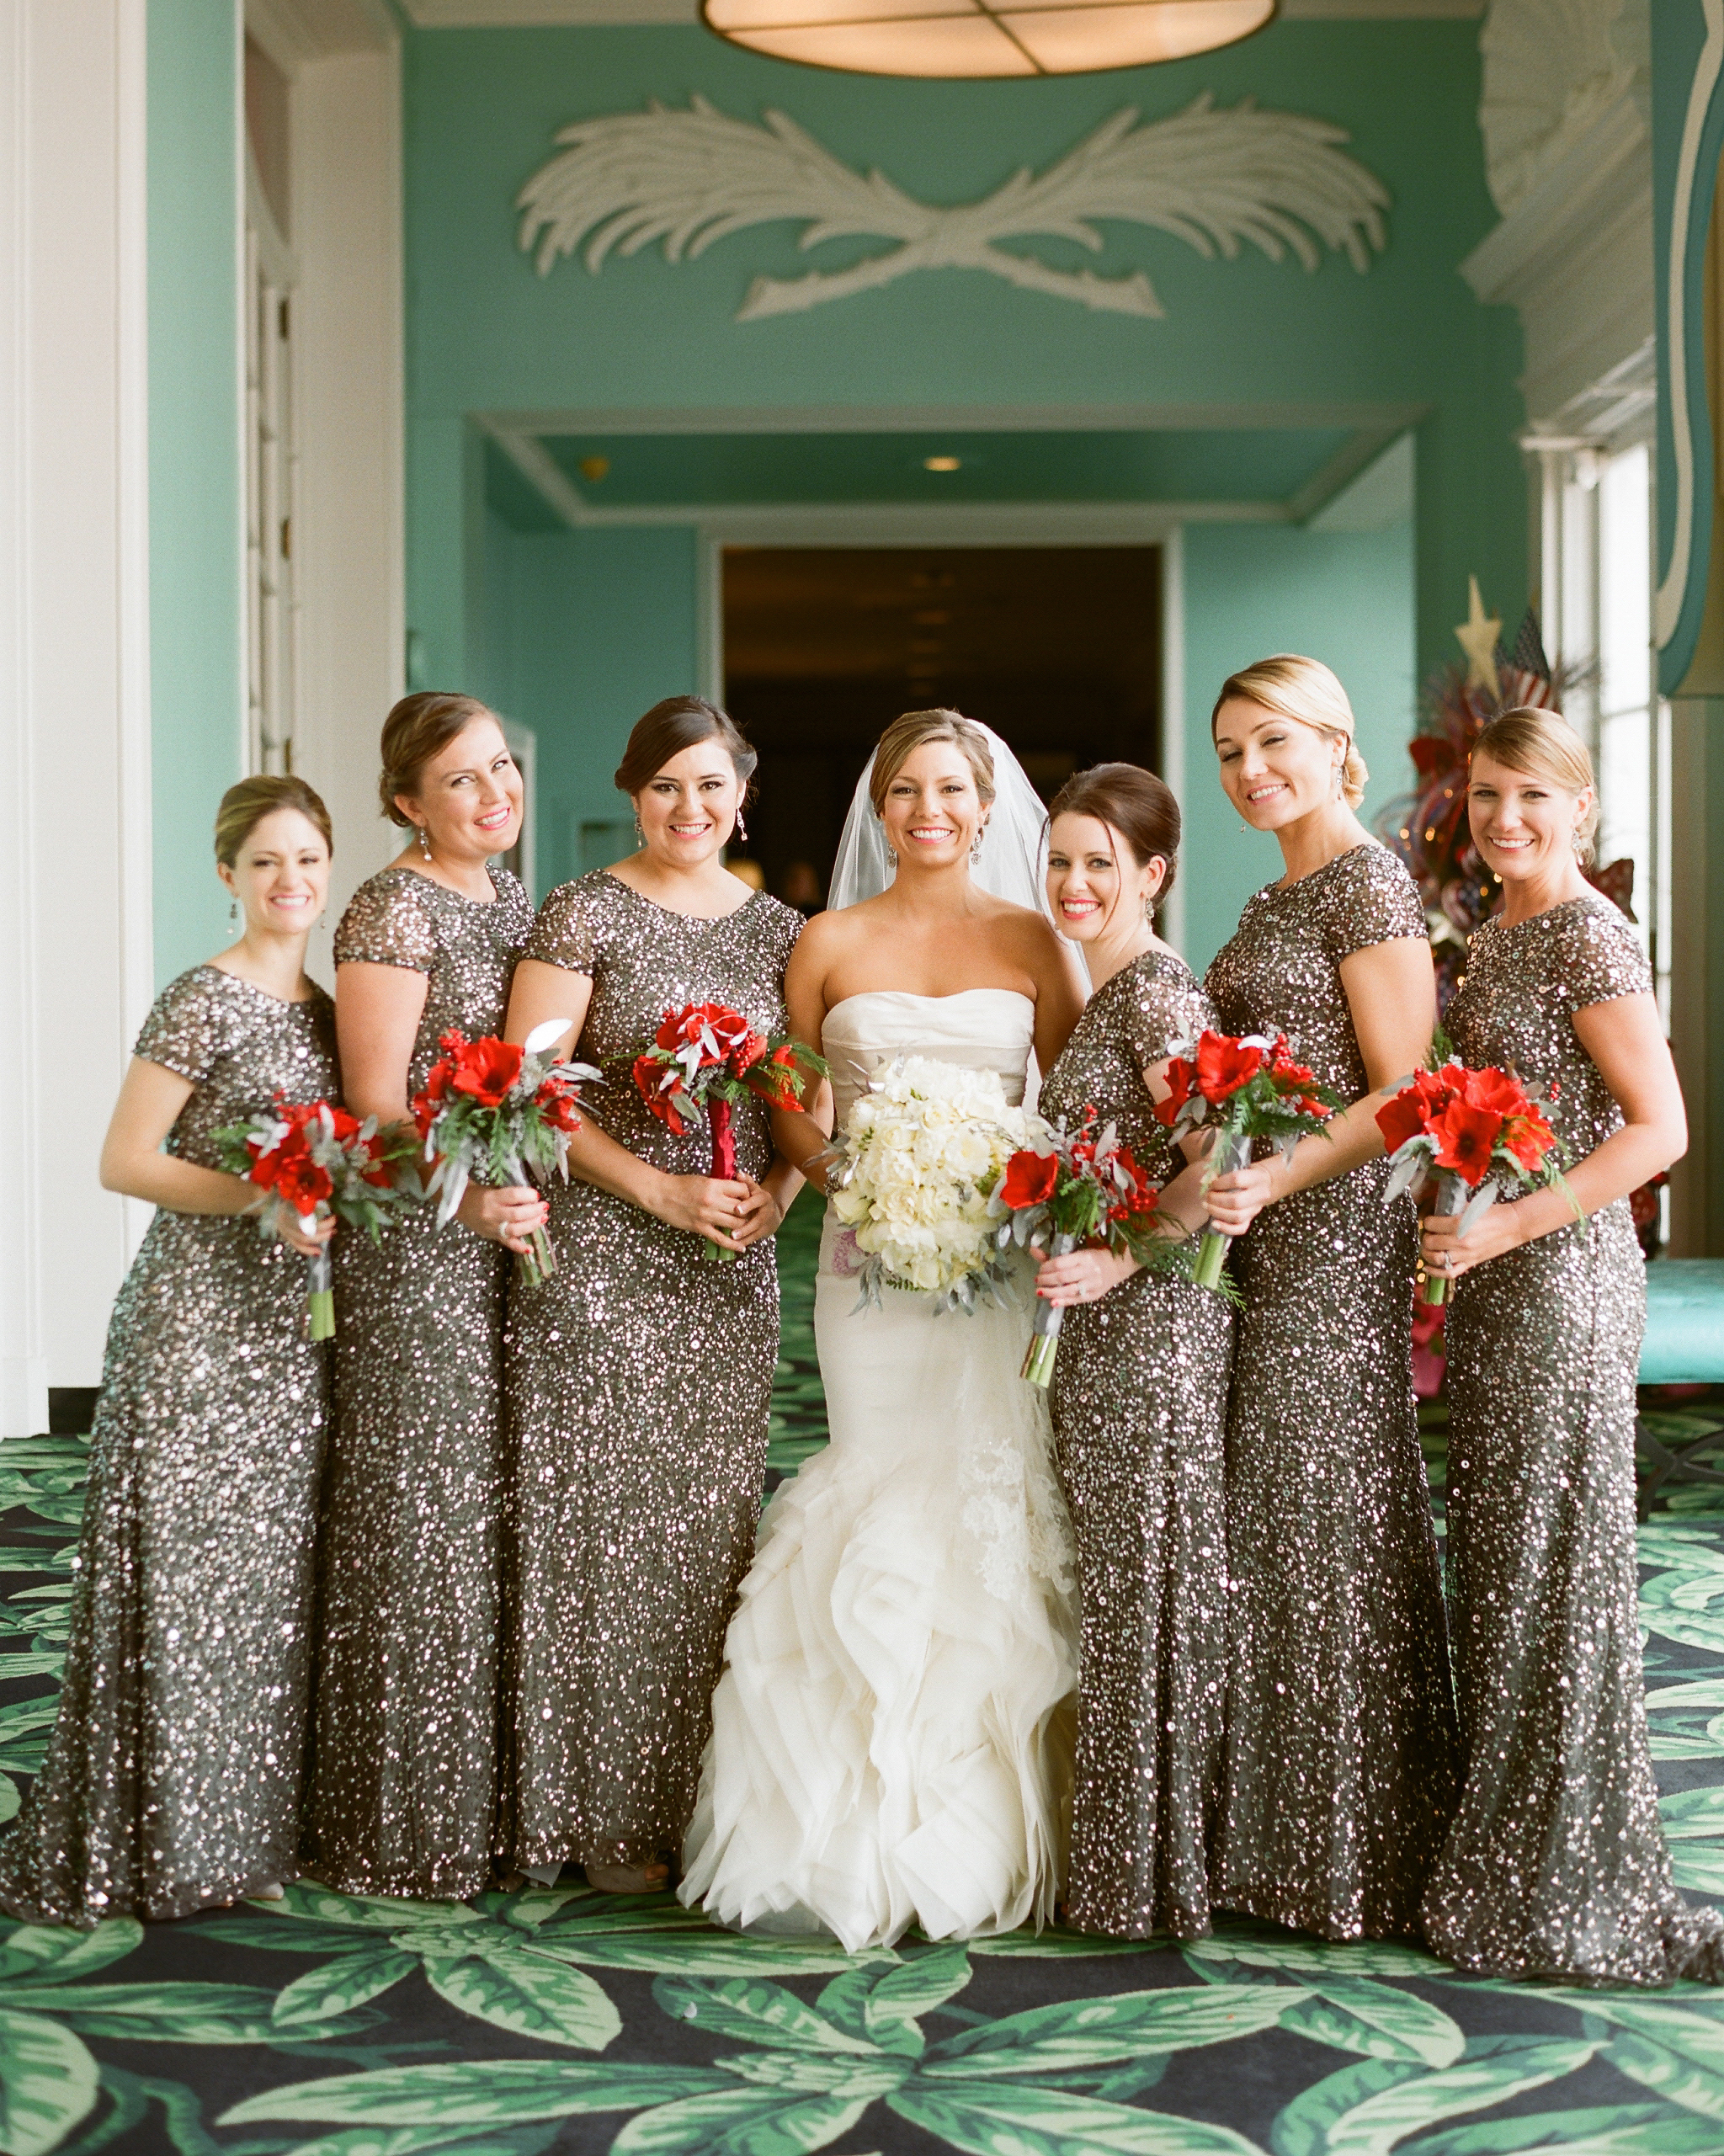 paige-michael-wedding-bridesmaids-0498-s112431-1215.jpg